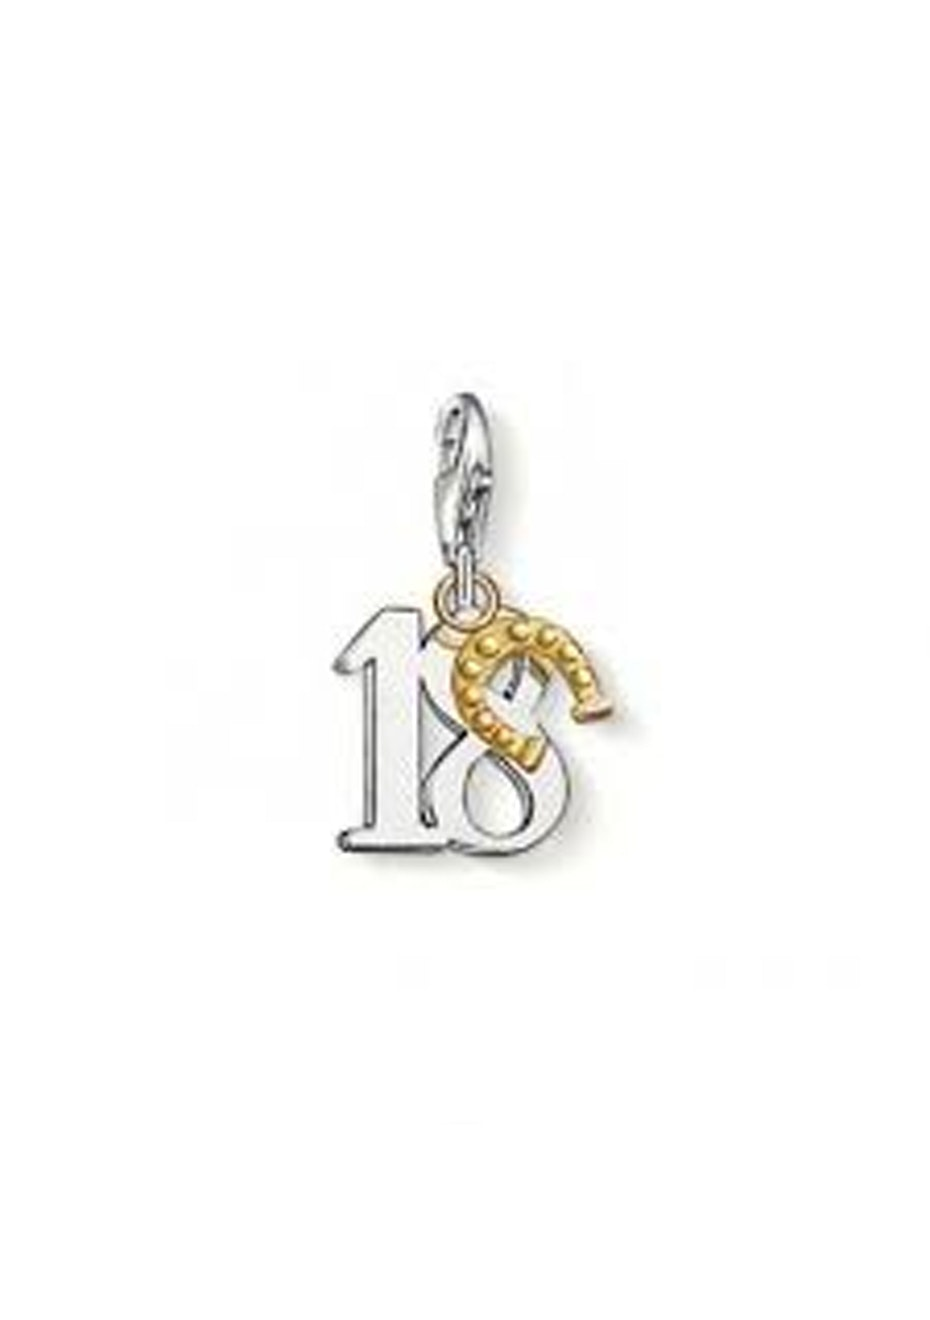 Thomas Sabo  - Charm Club - Lucky Number 18 Ygp